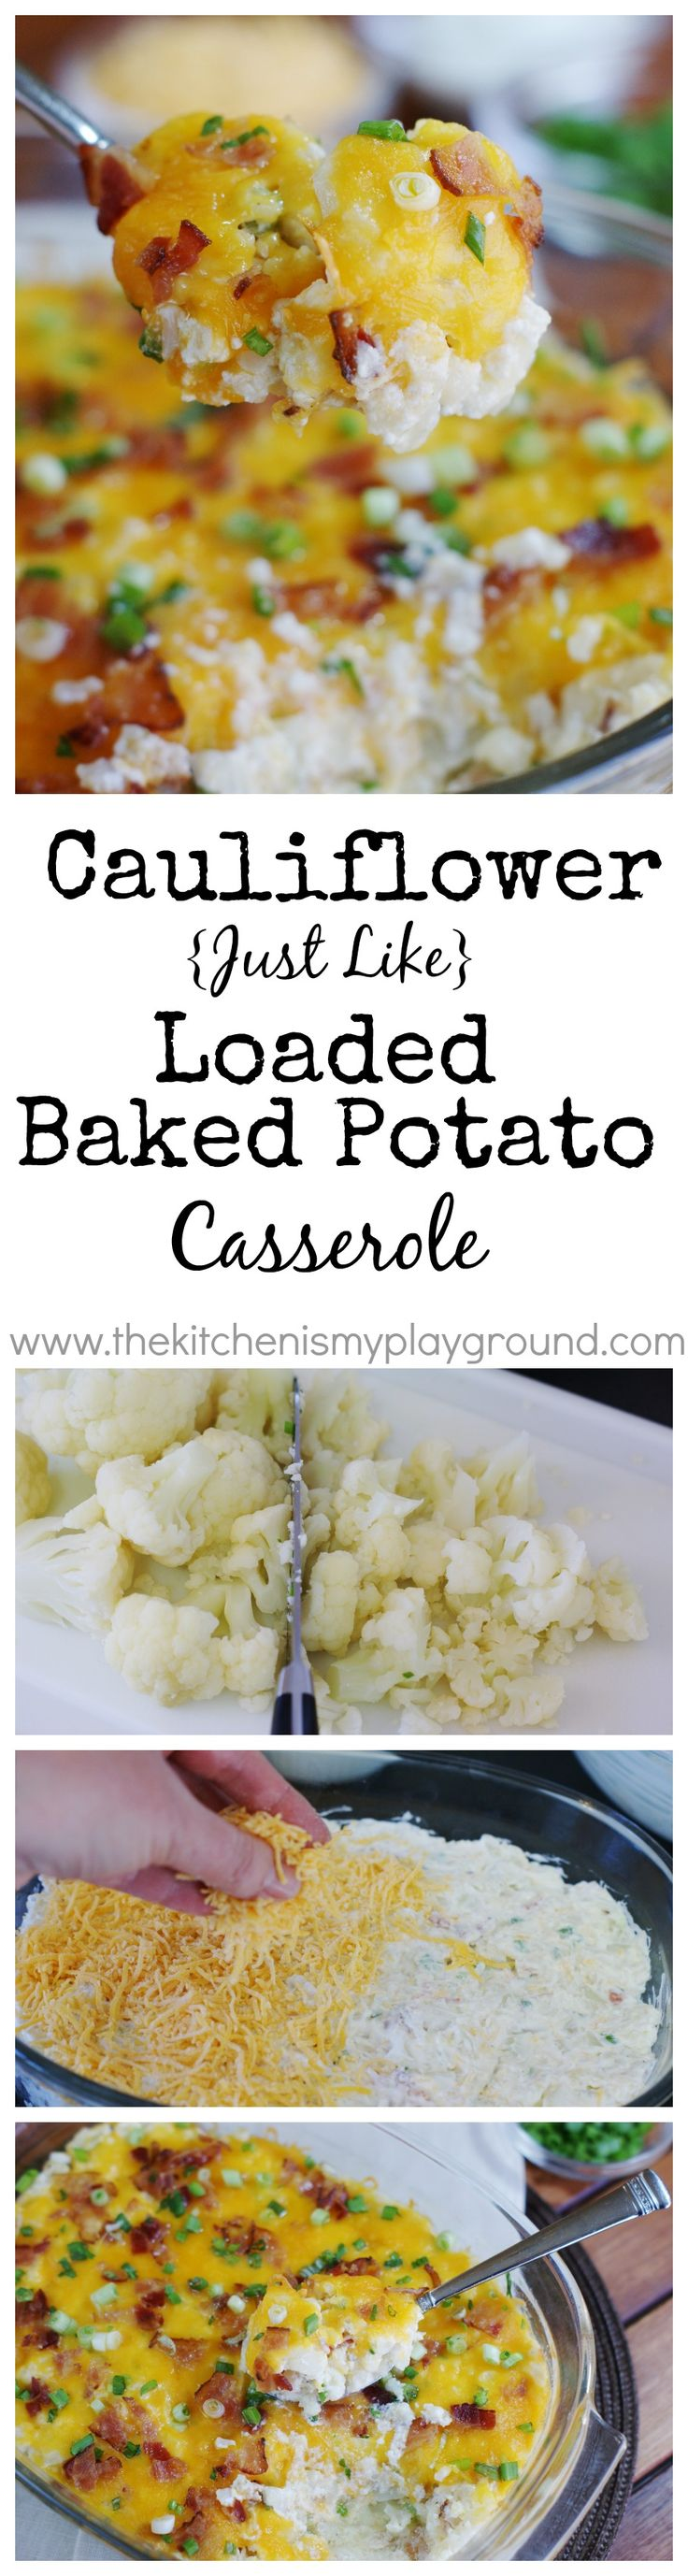 Cauliflower {Just Like} Loaded Baked Potato Casserole ~ you certainly will not miss the potato.  This has all the loaded flavor without it.  www.thekitchenismyplayground.com